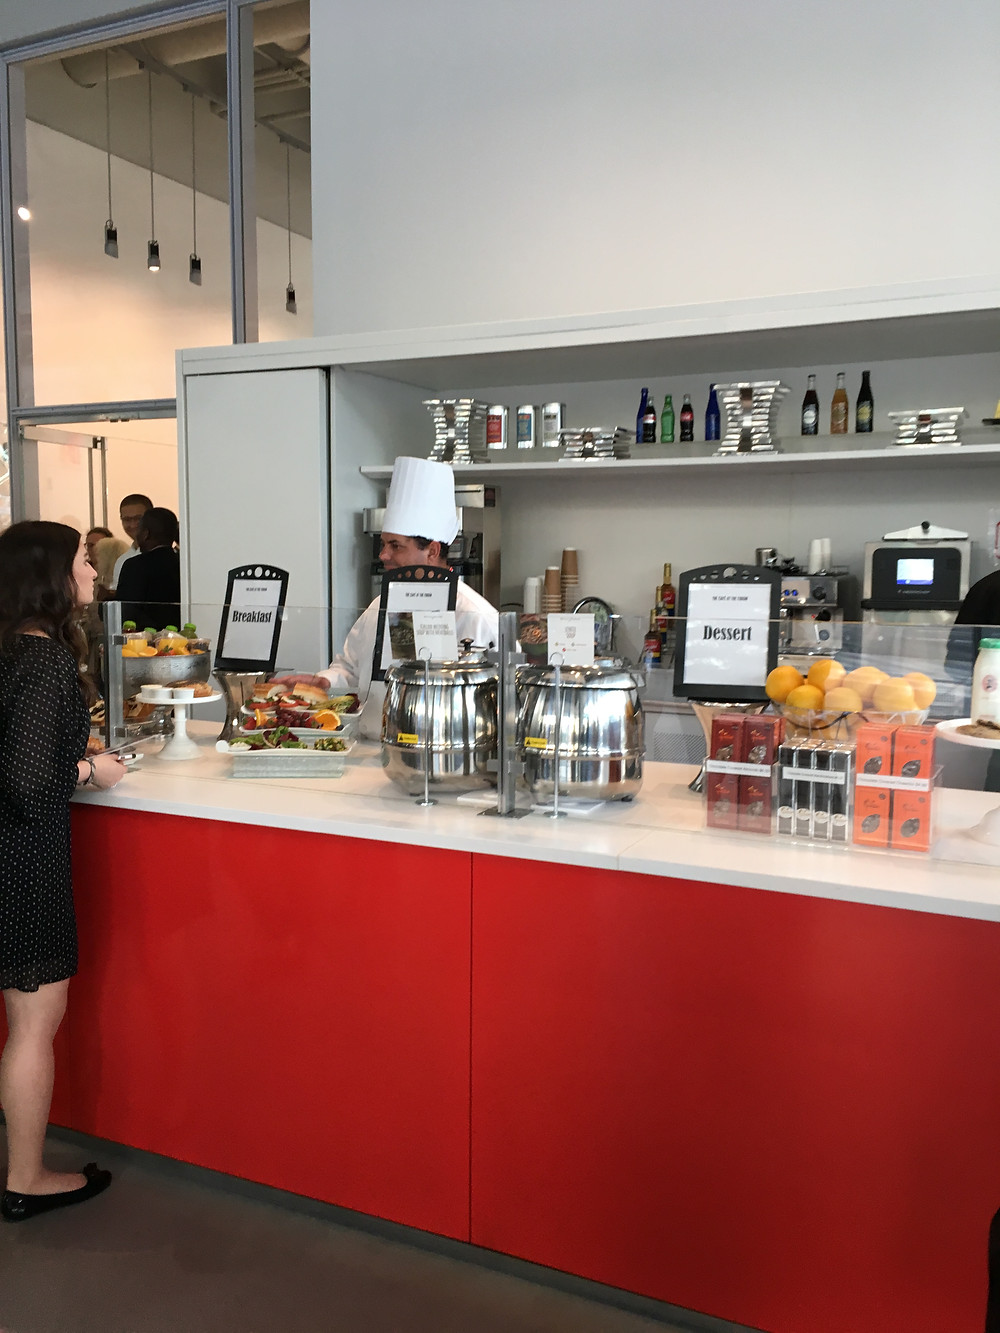 The Cafe at the Forum is a place to get a coffee and a light bite